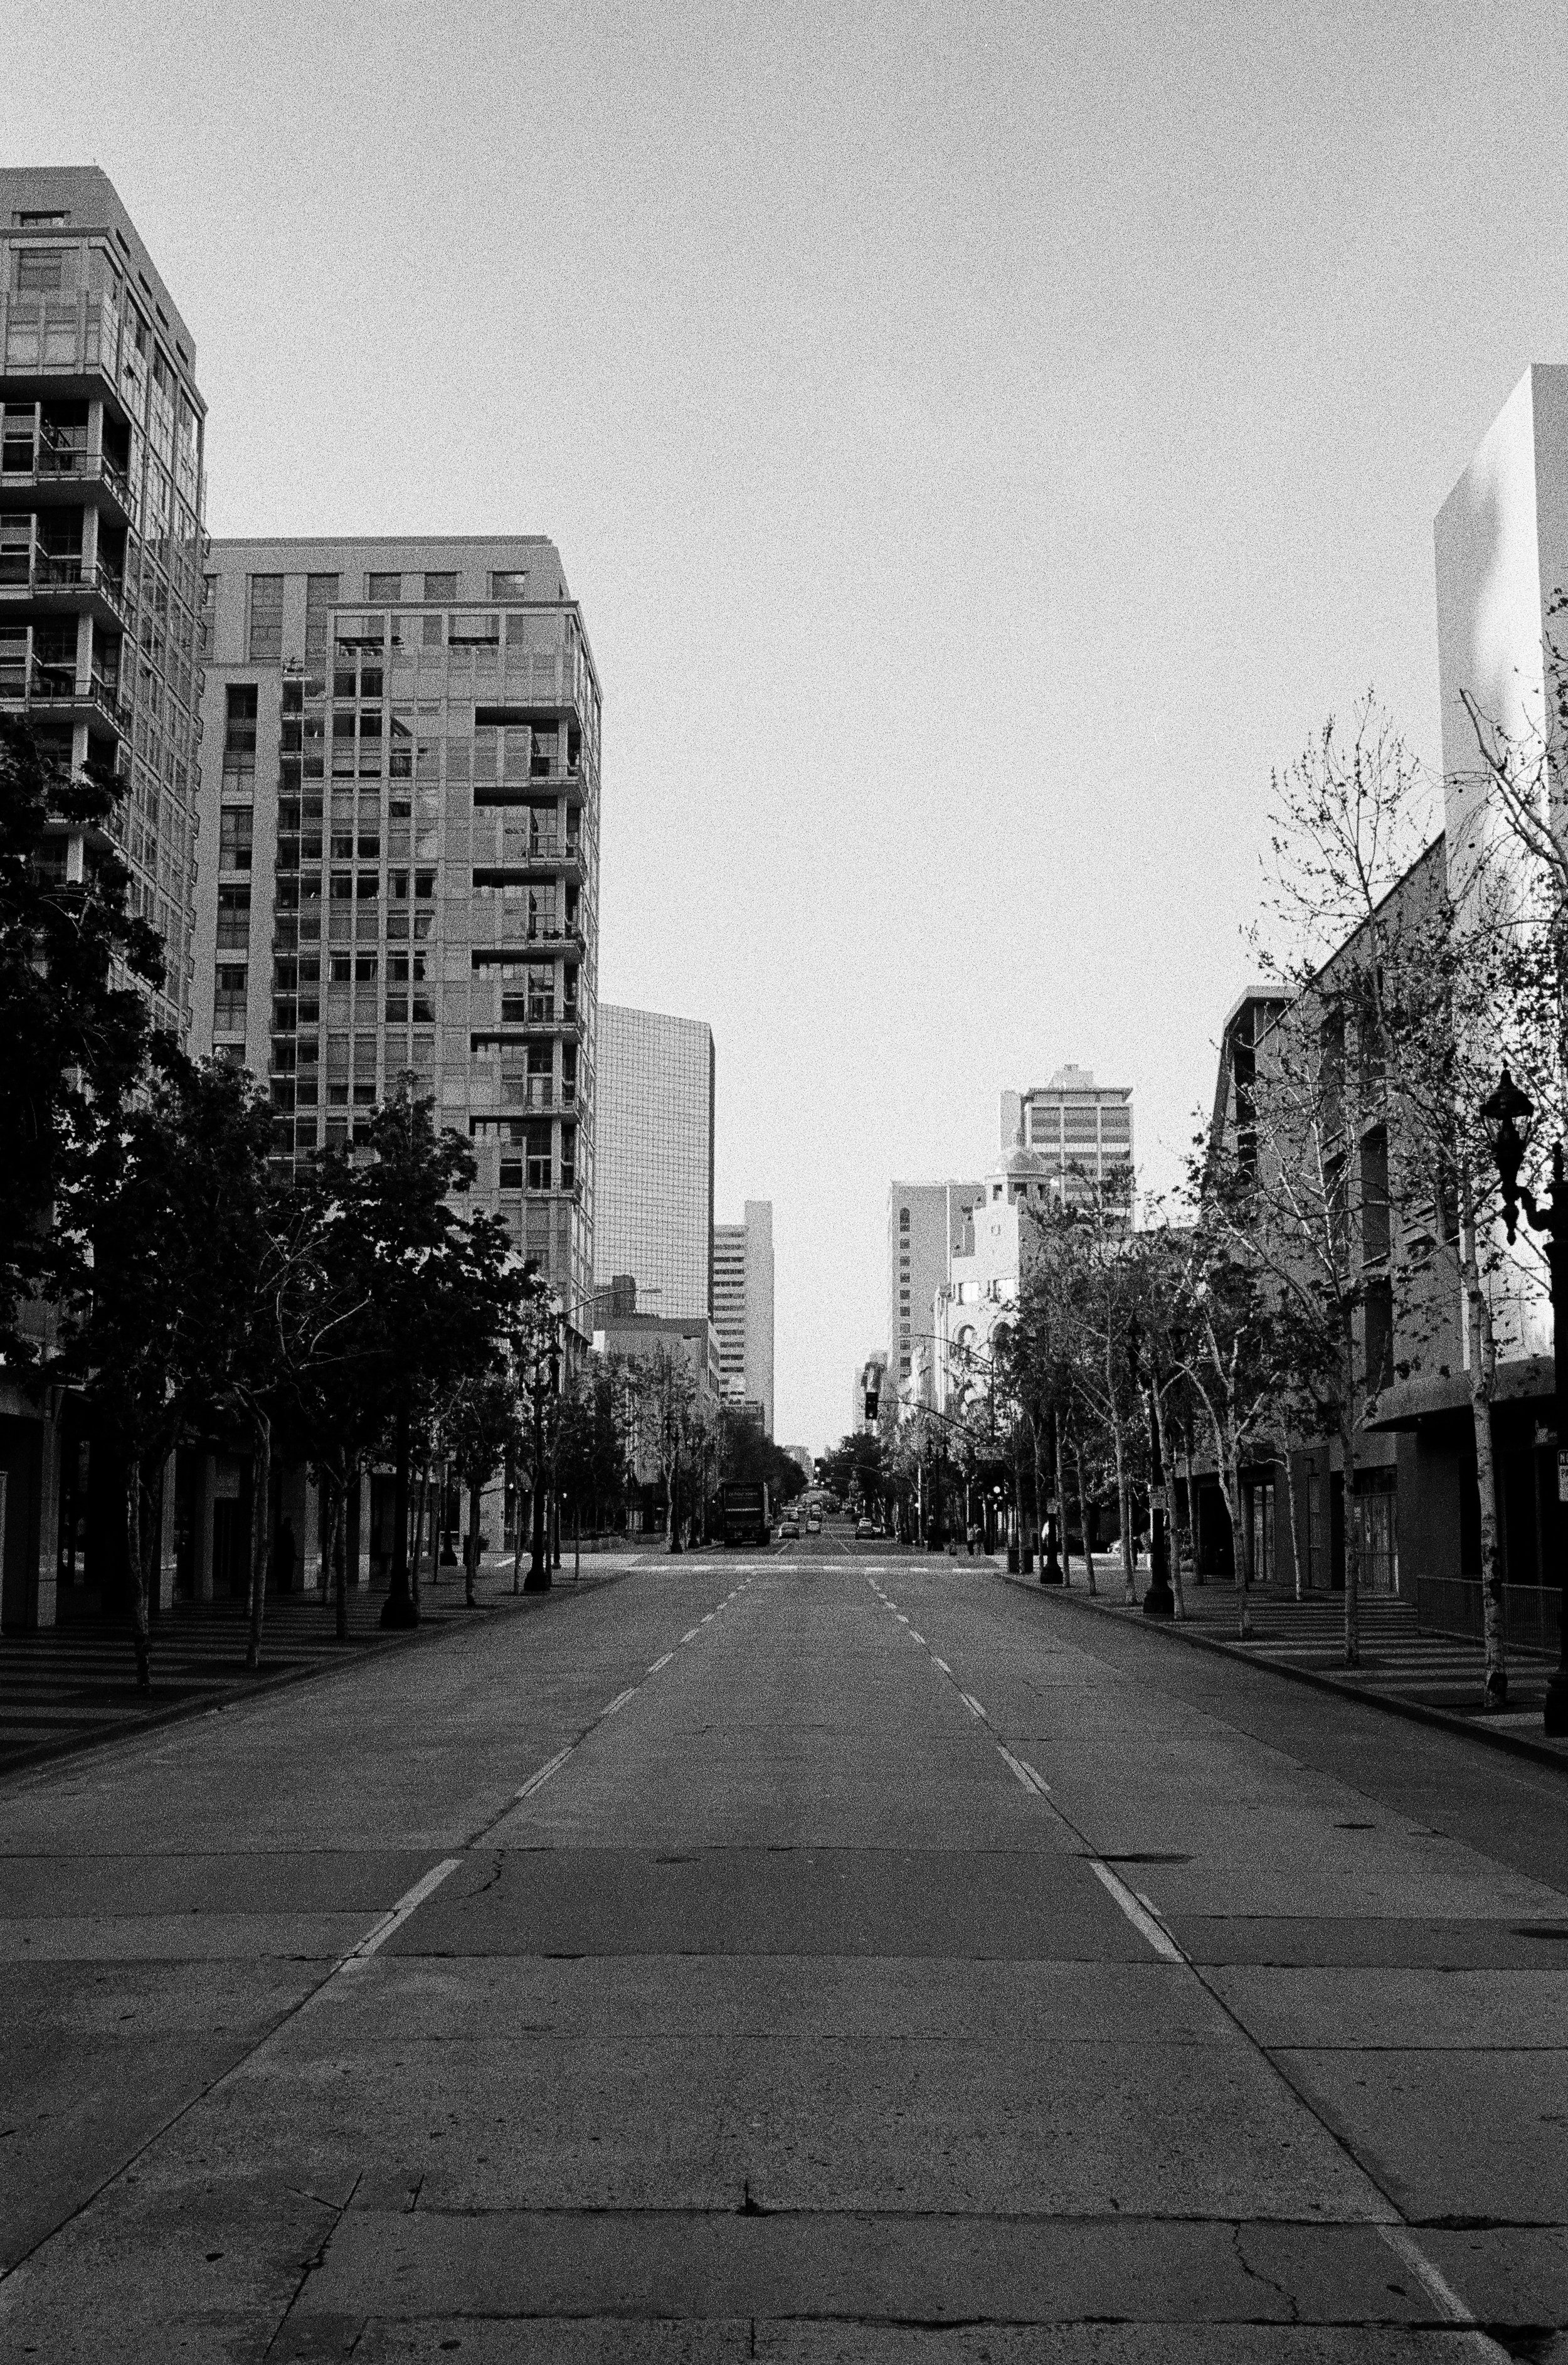 400tx_1669-resized-35.jpg